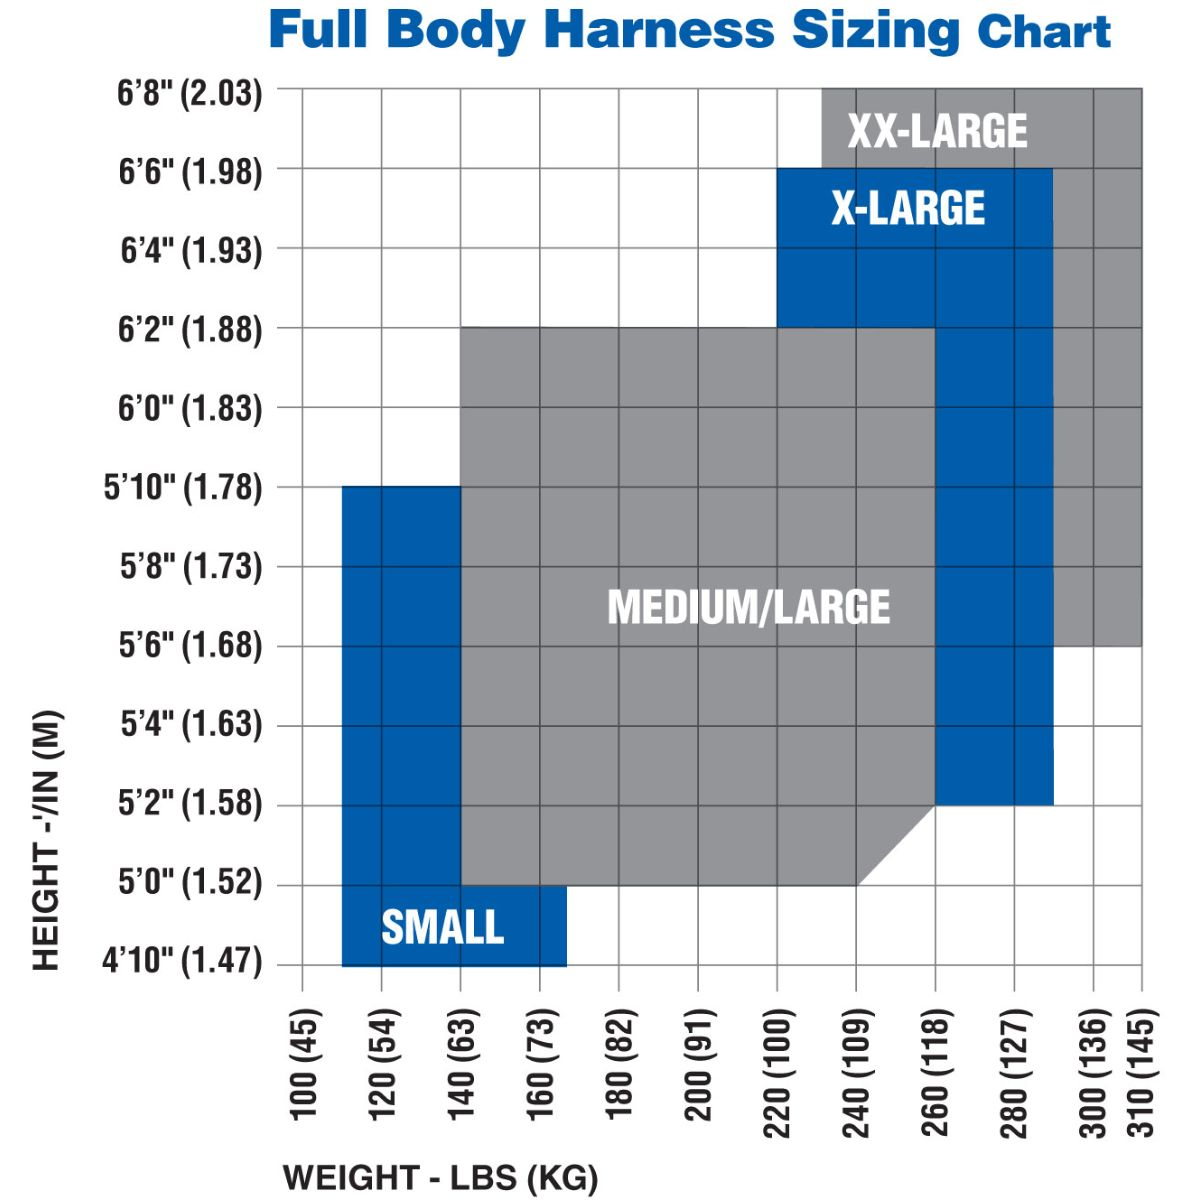 HarnessSizingChart